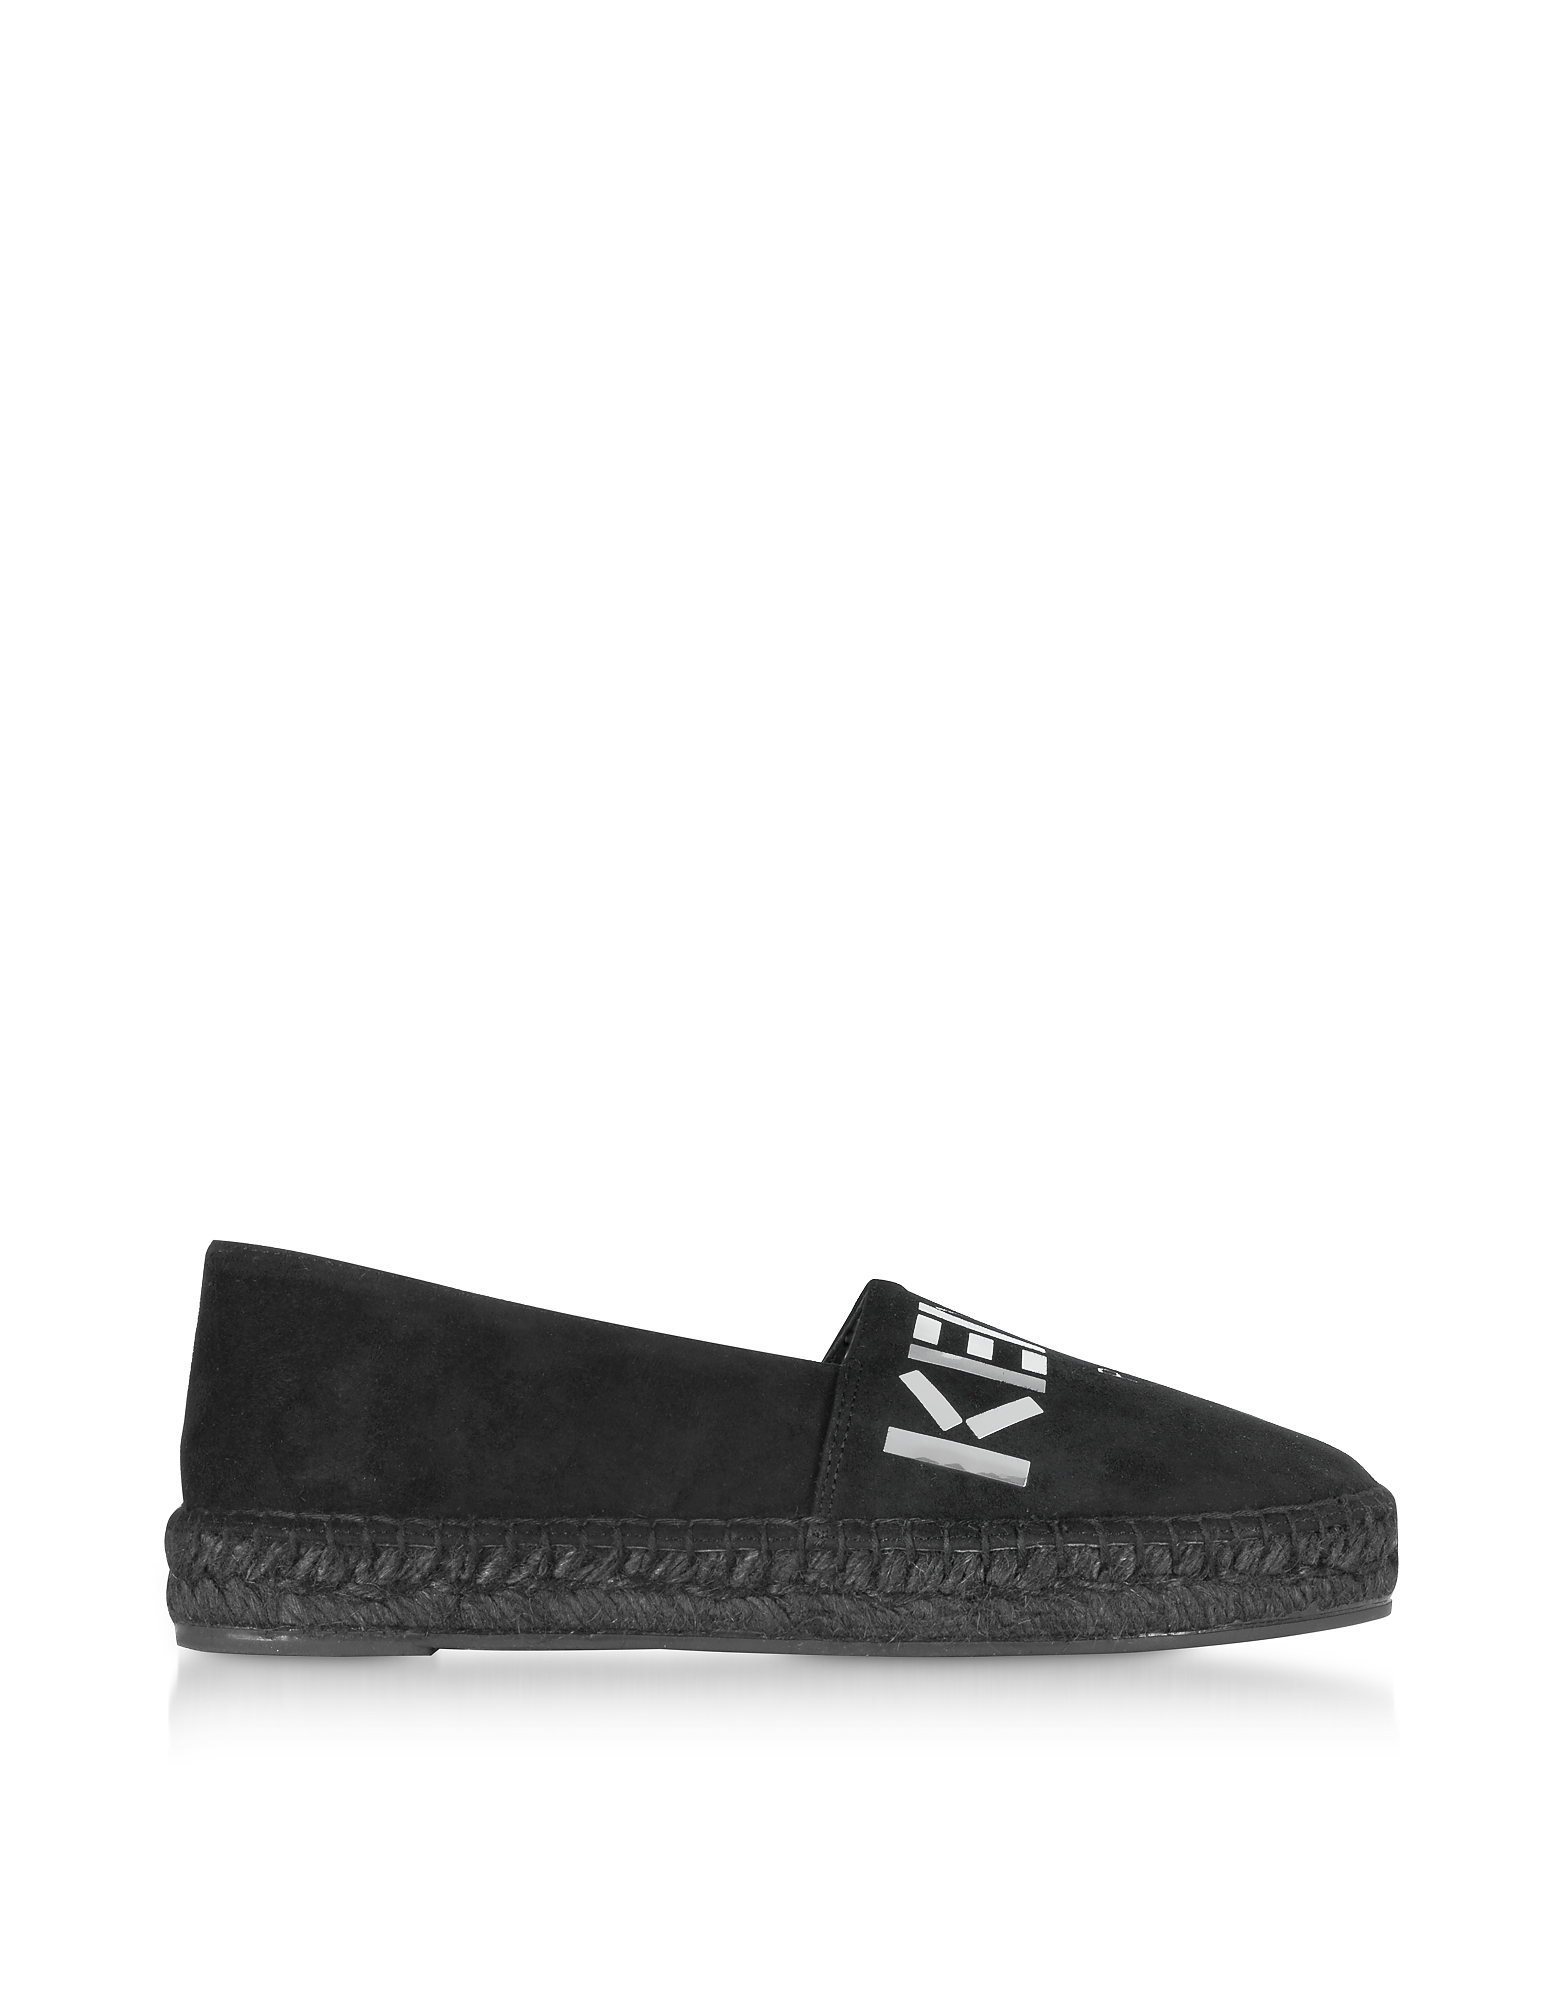 Kenzo Shoes, Black Suede Kenzo Mirrored Espadrilles